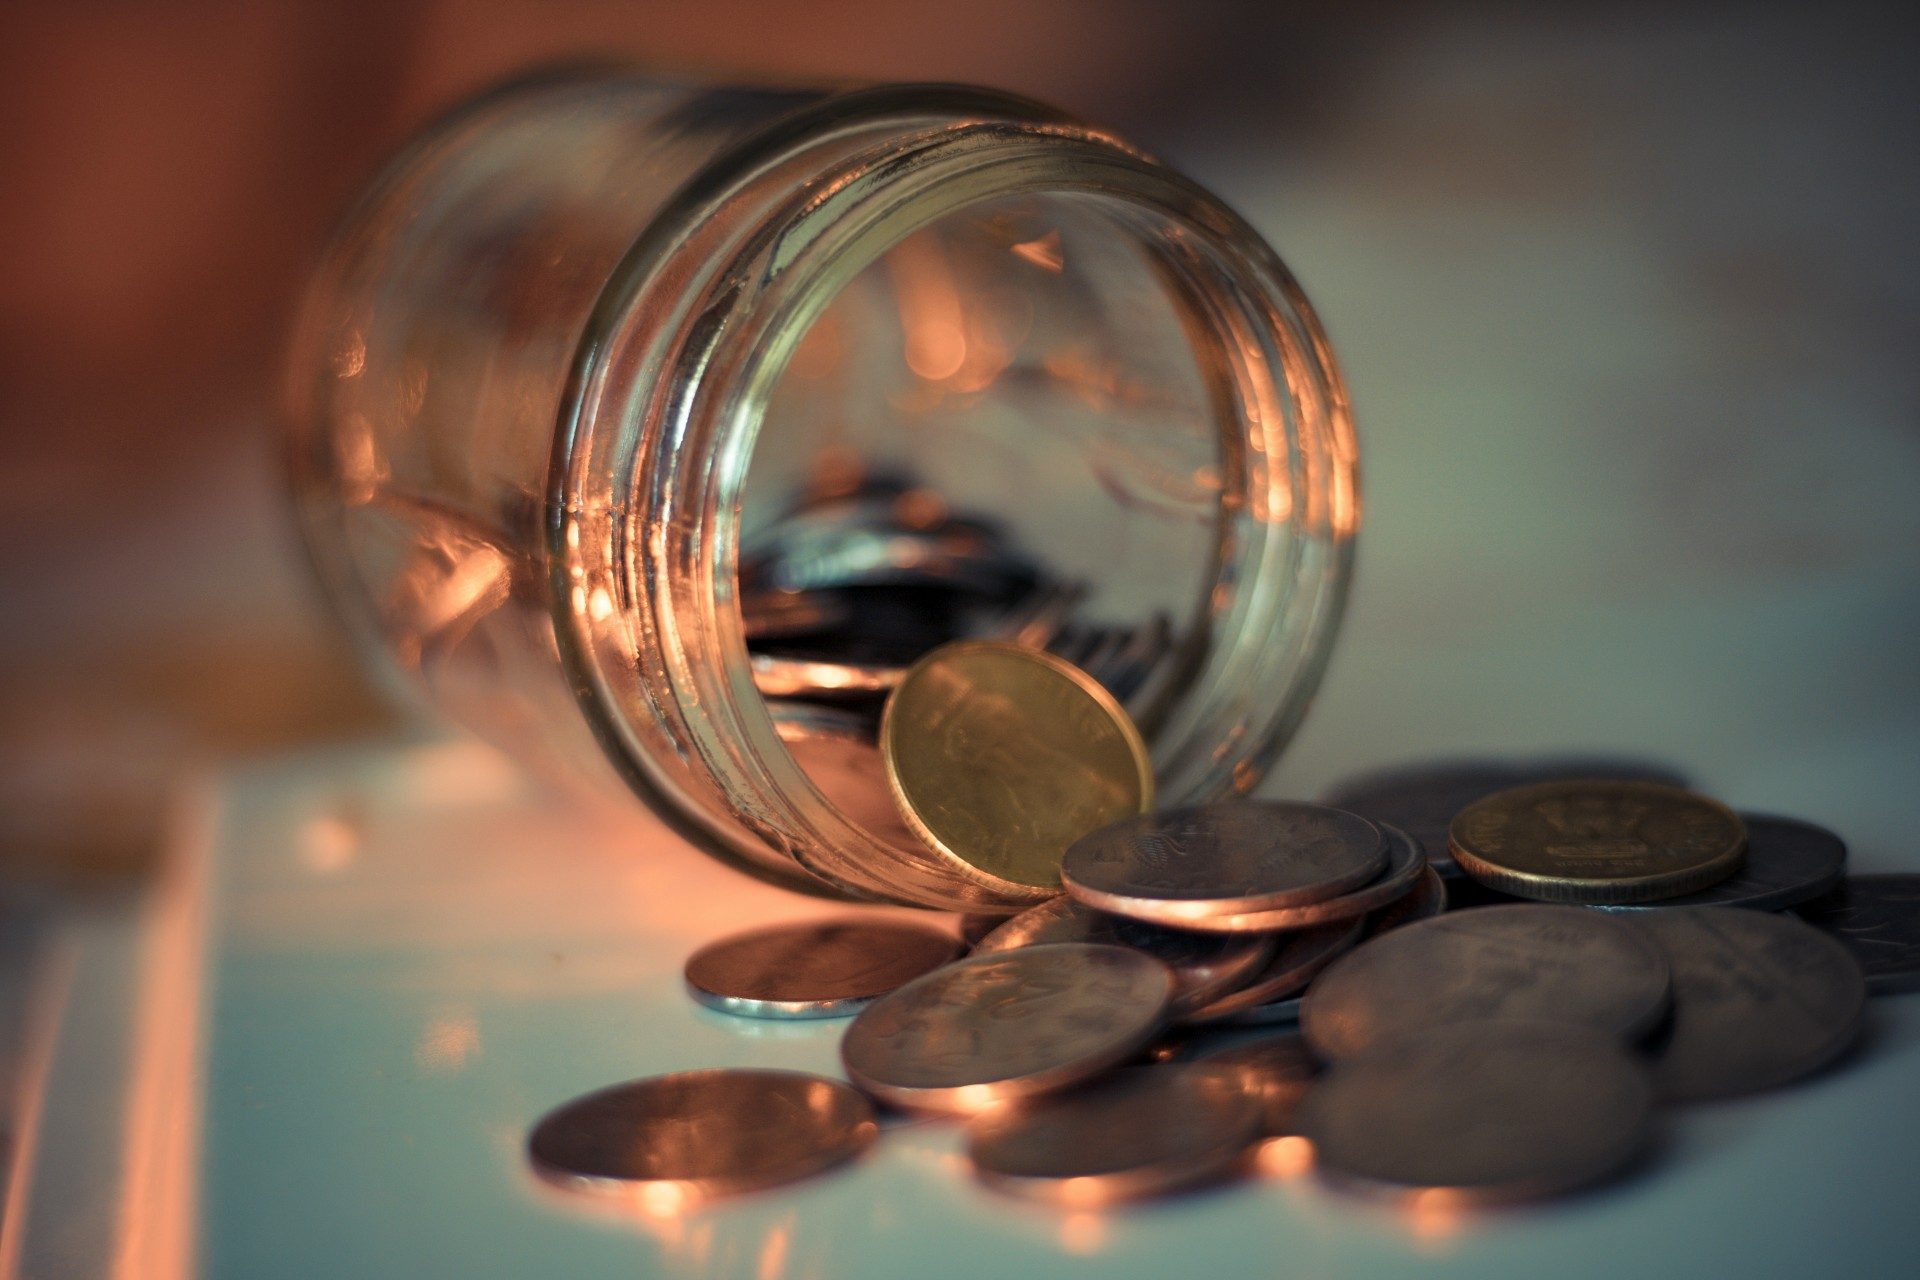 What has been the main source of your SME funding? A poll shows the main way small business owners are funding their ventures.